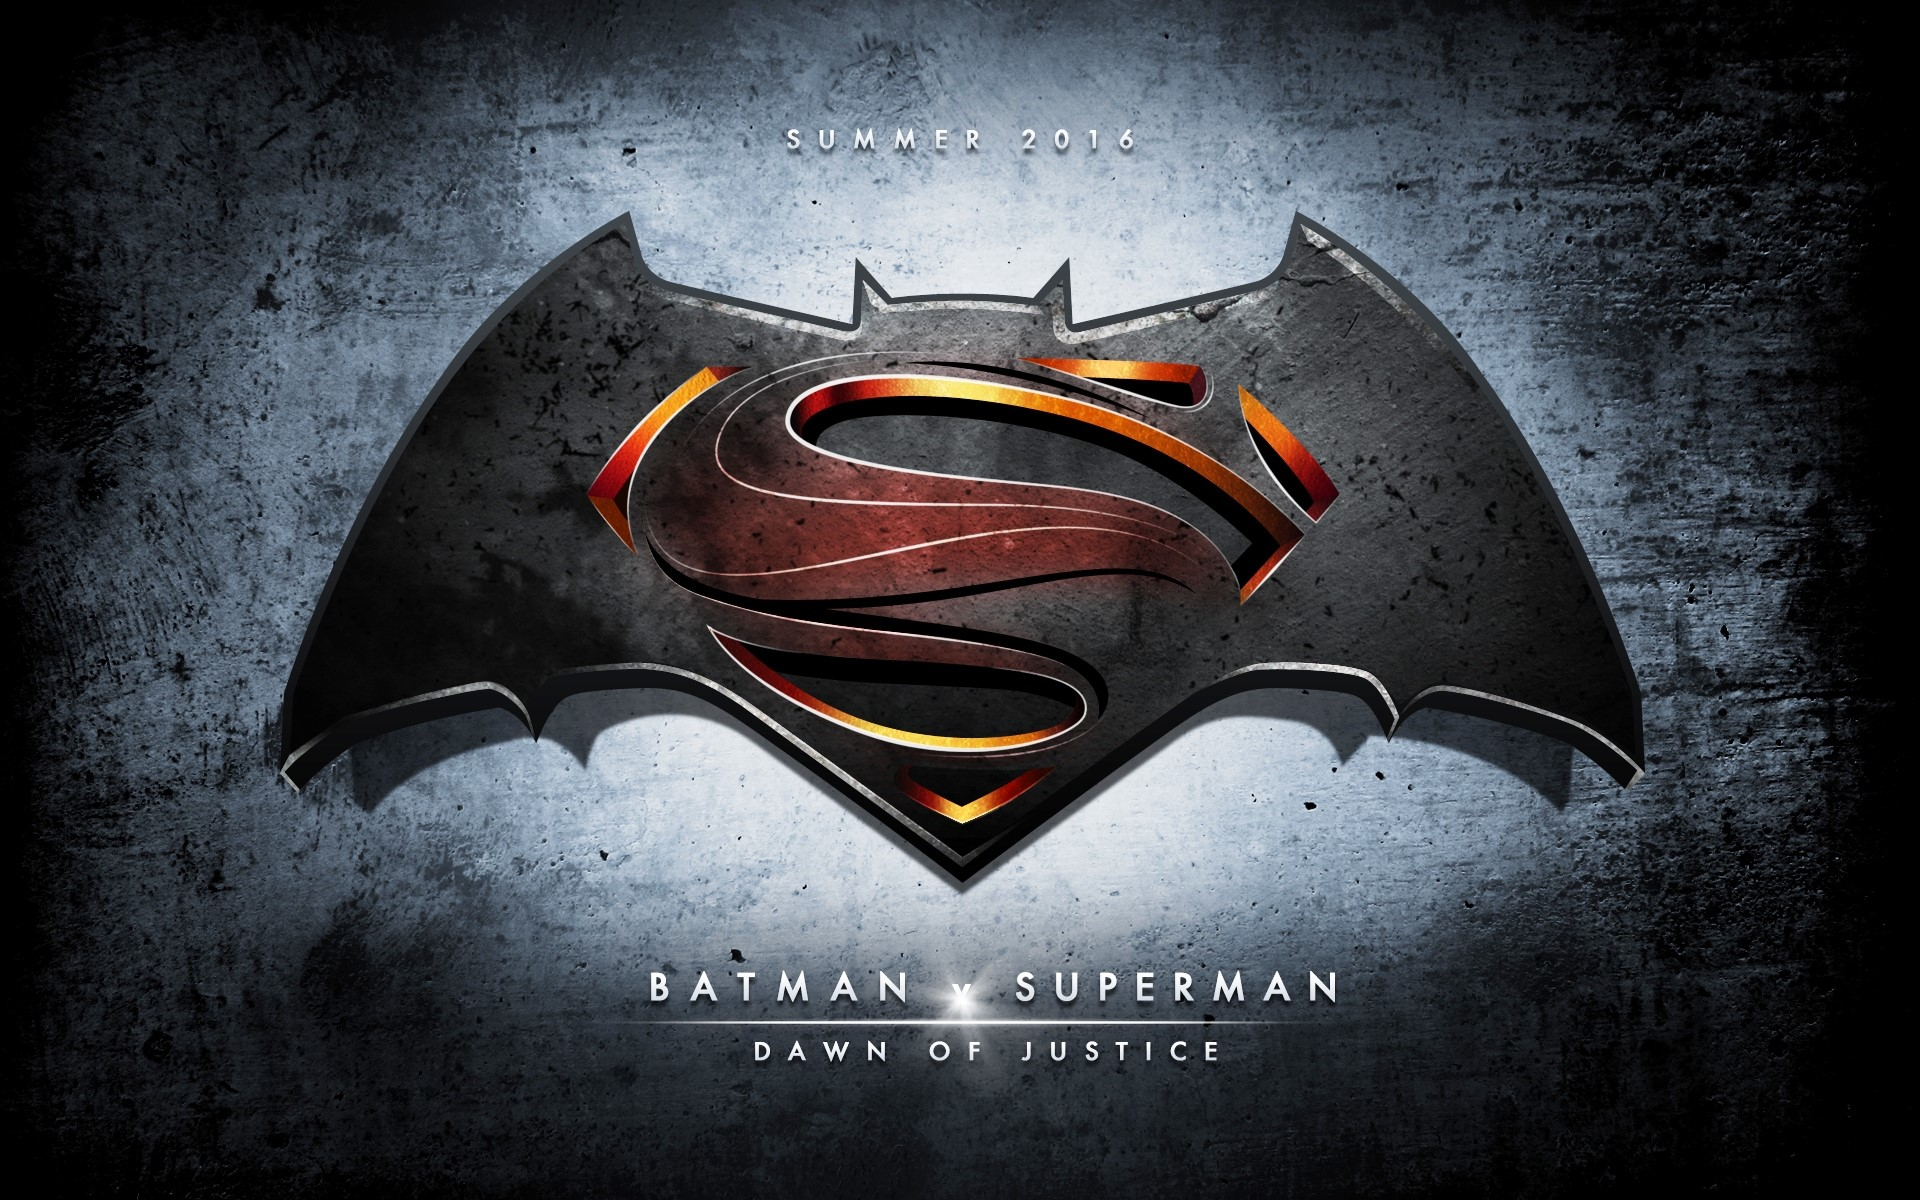 Batman v Superman Dawn of Justice Laptop Wallpapers